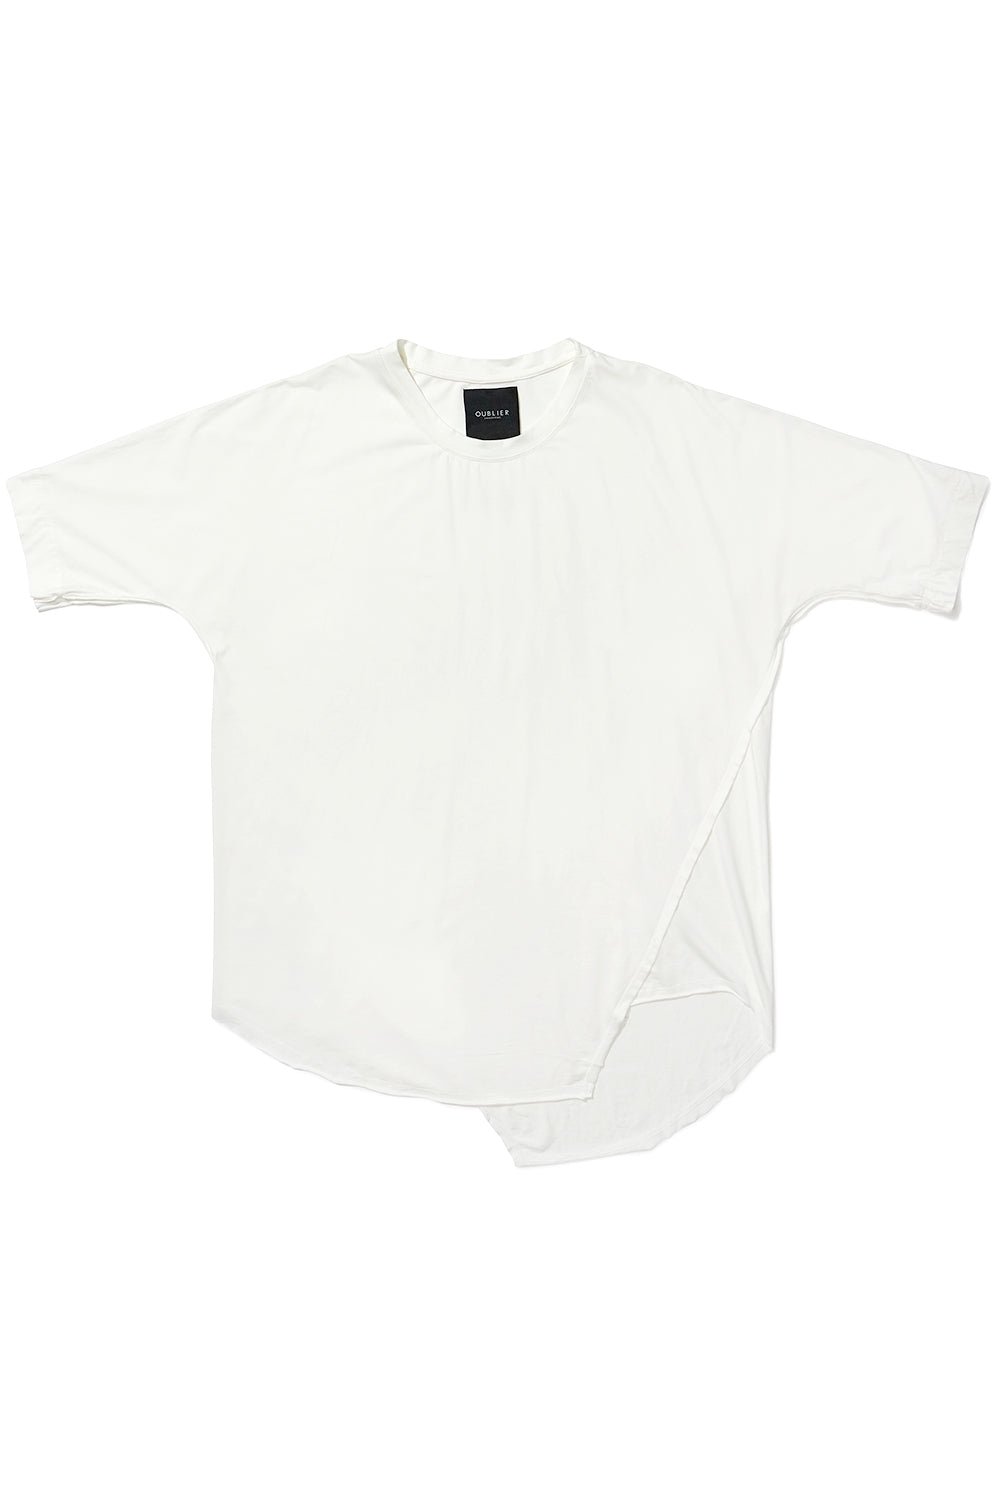 NATURAL AXIS T-SHIRT